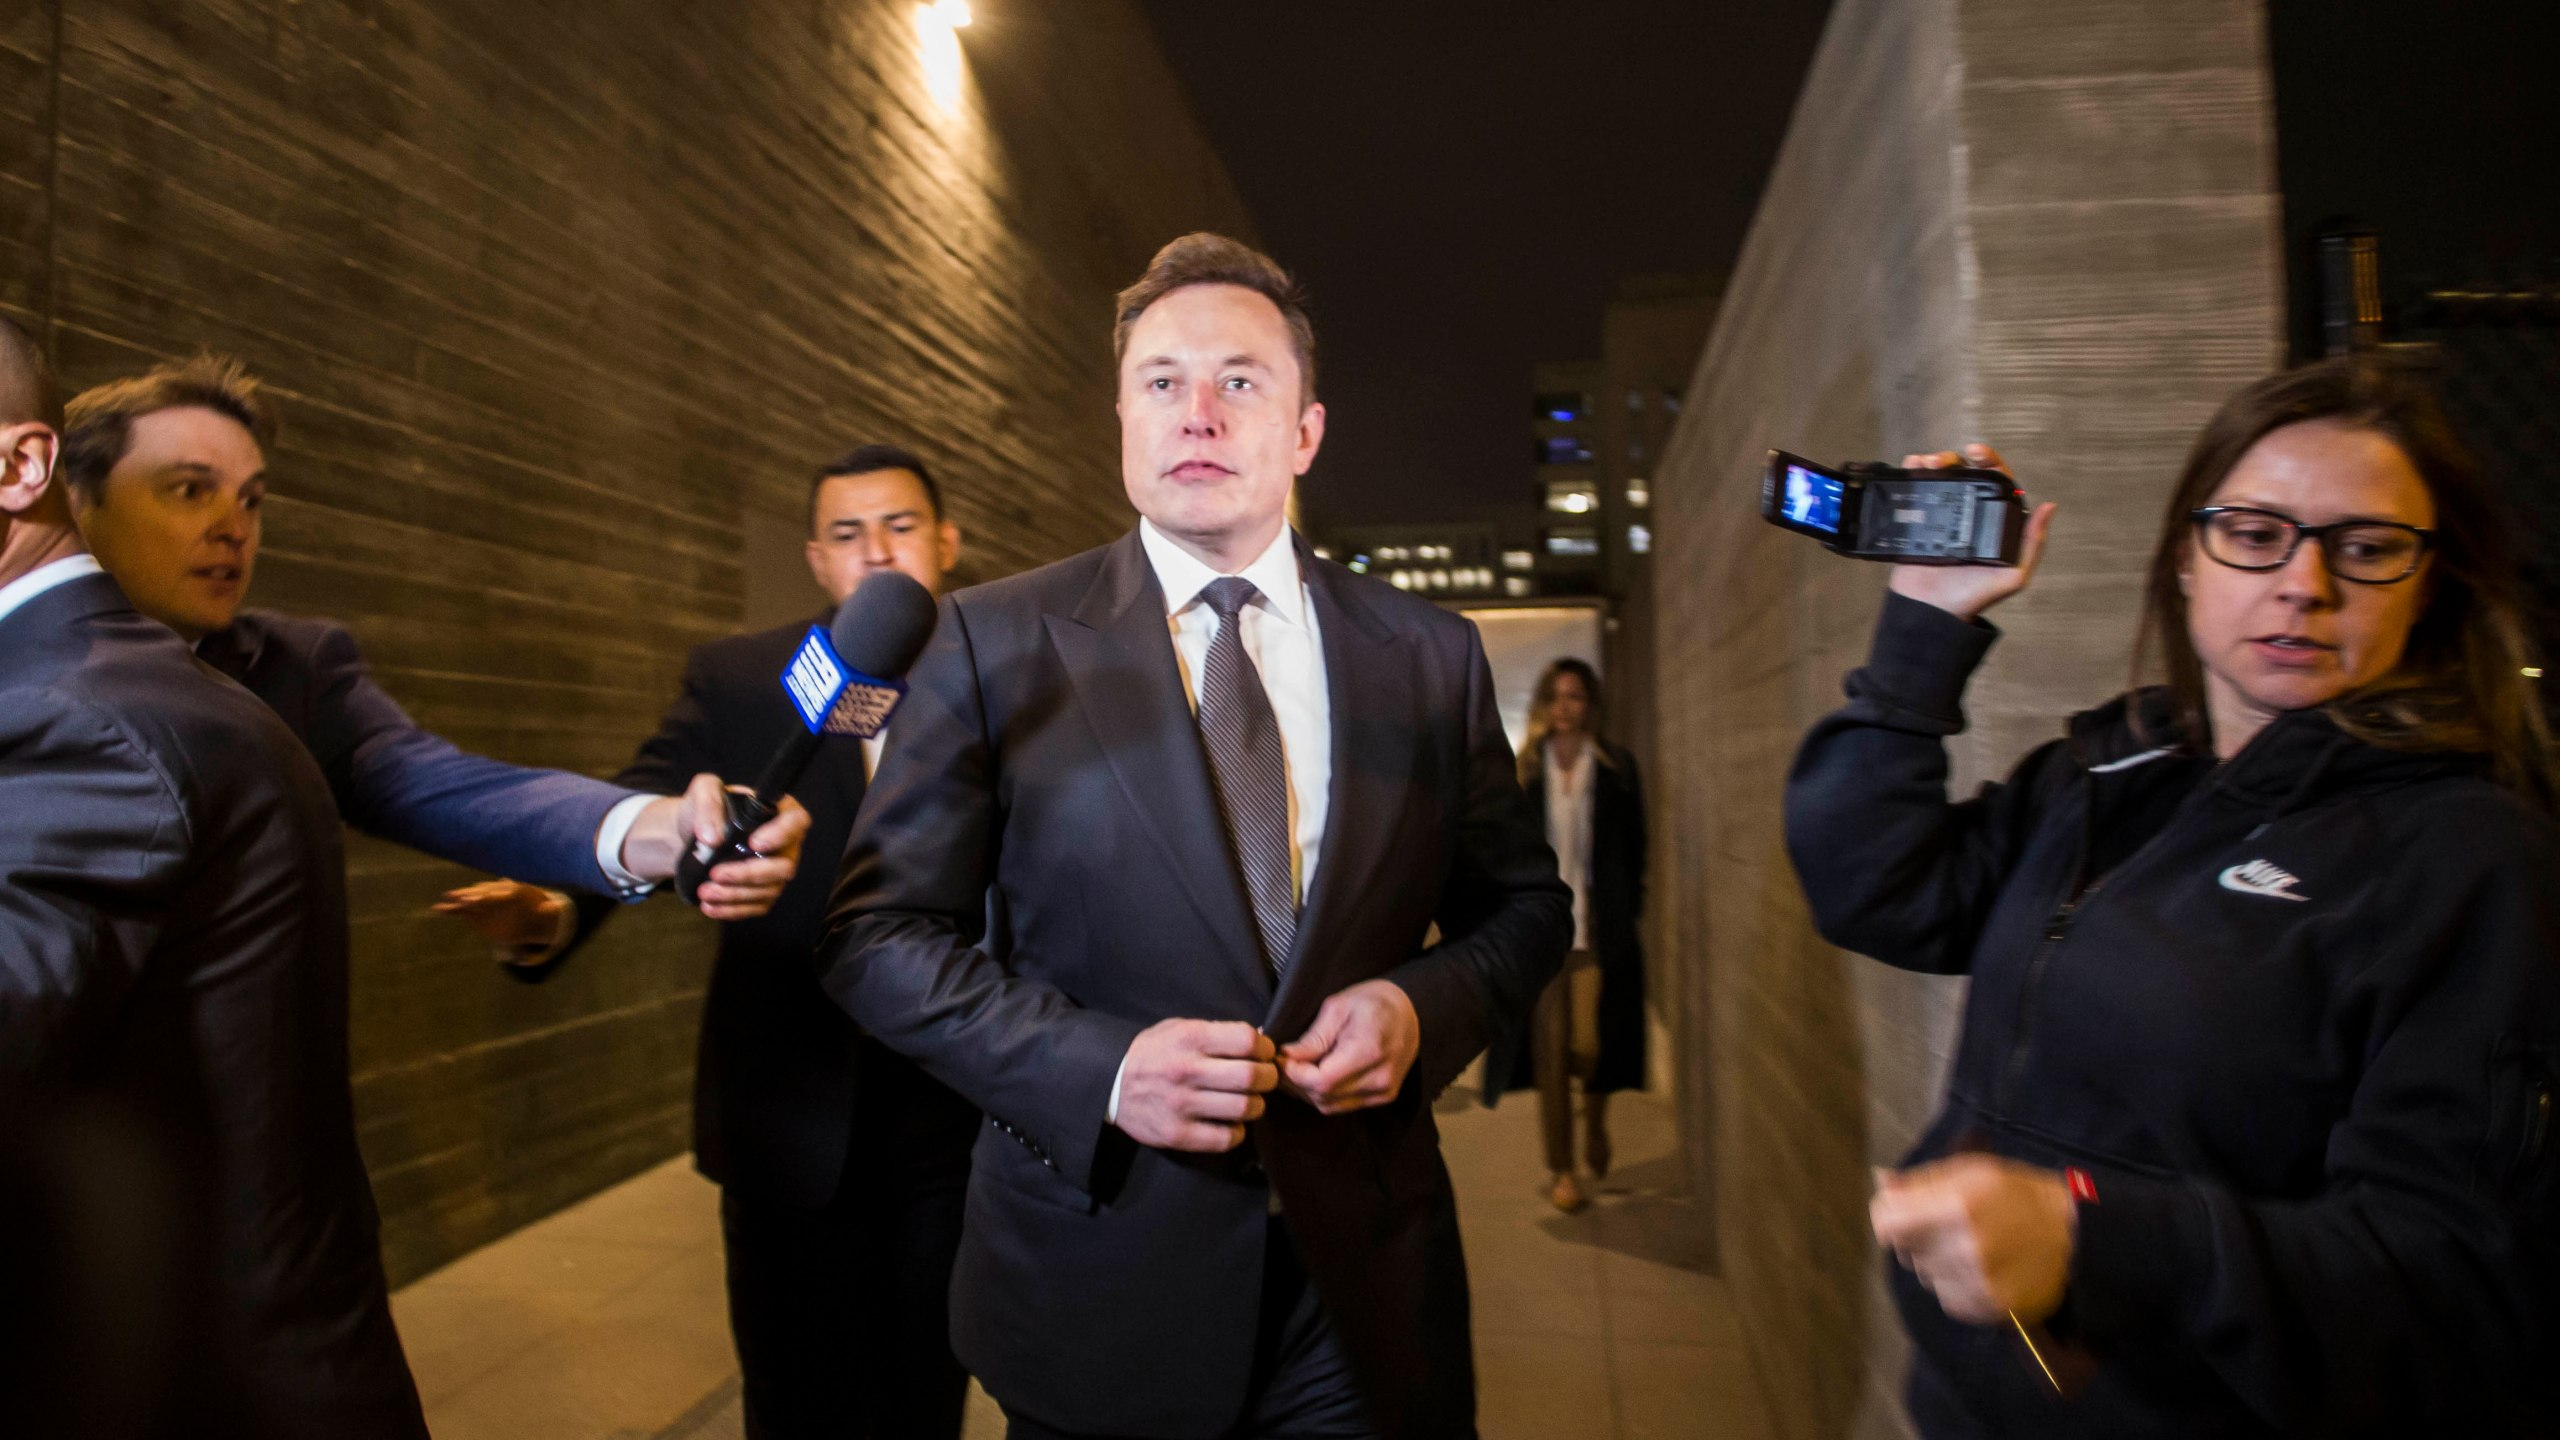 Elon Musk leaves a federal courthouse in Los Angeles through a back door on Dec. 3, 2019. (Credit: Apu Gomes / Getty Images)